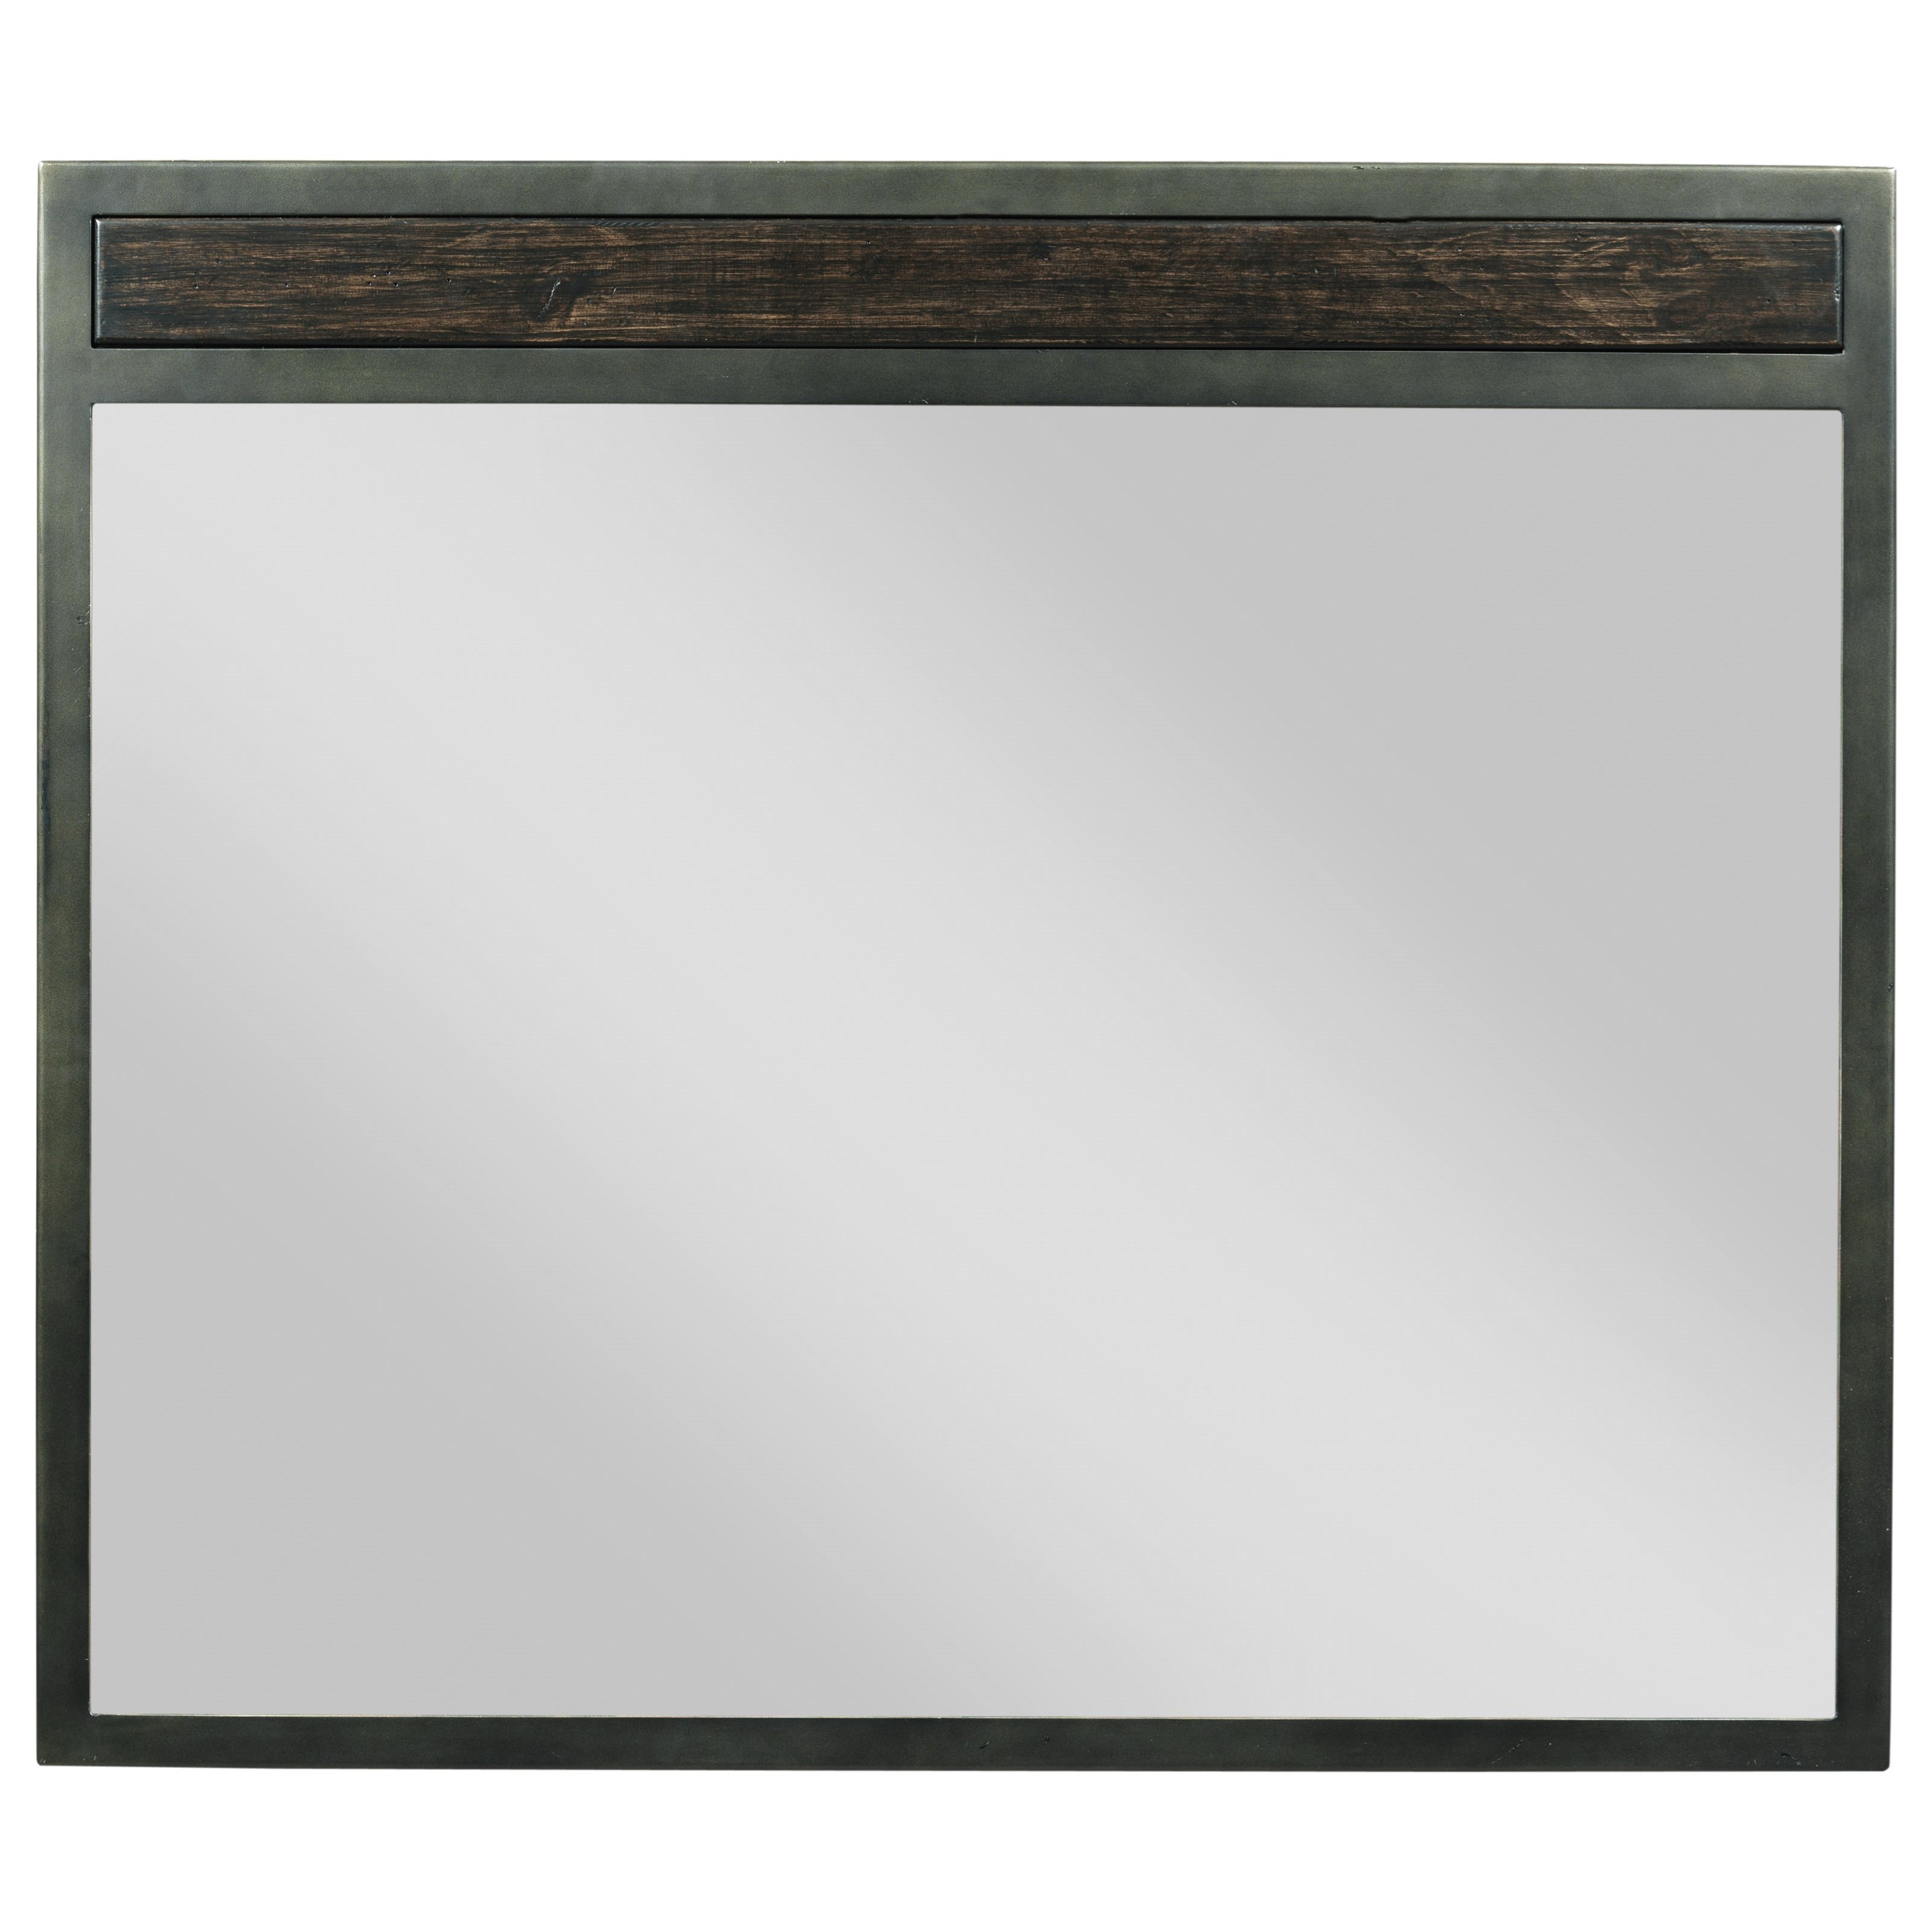 Plank Road Shelley Mirror                               at Stoney Creek Furniture